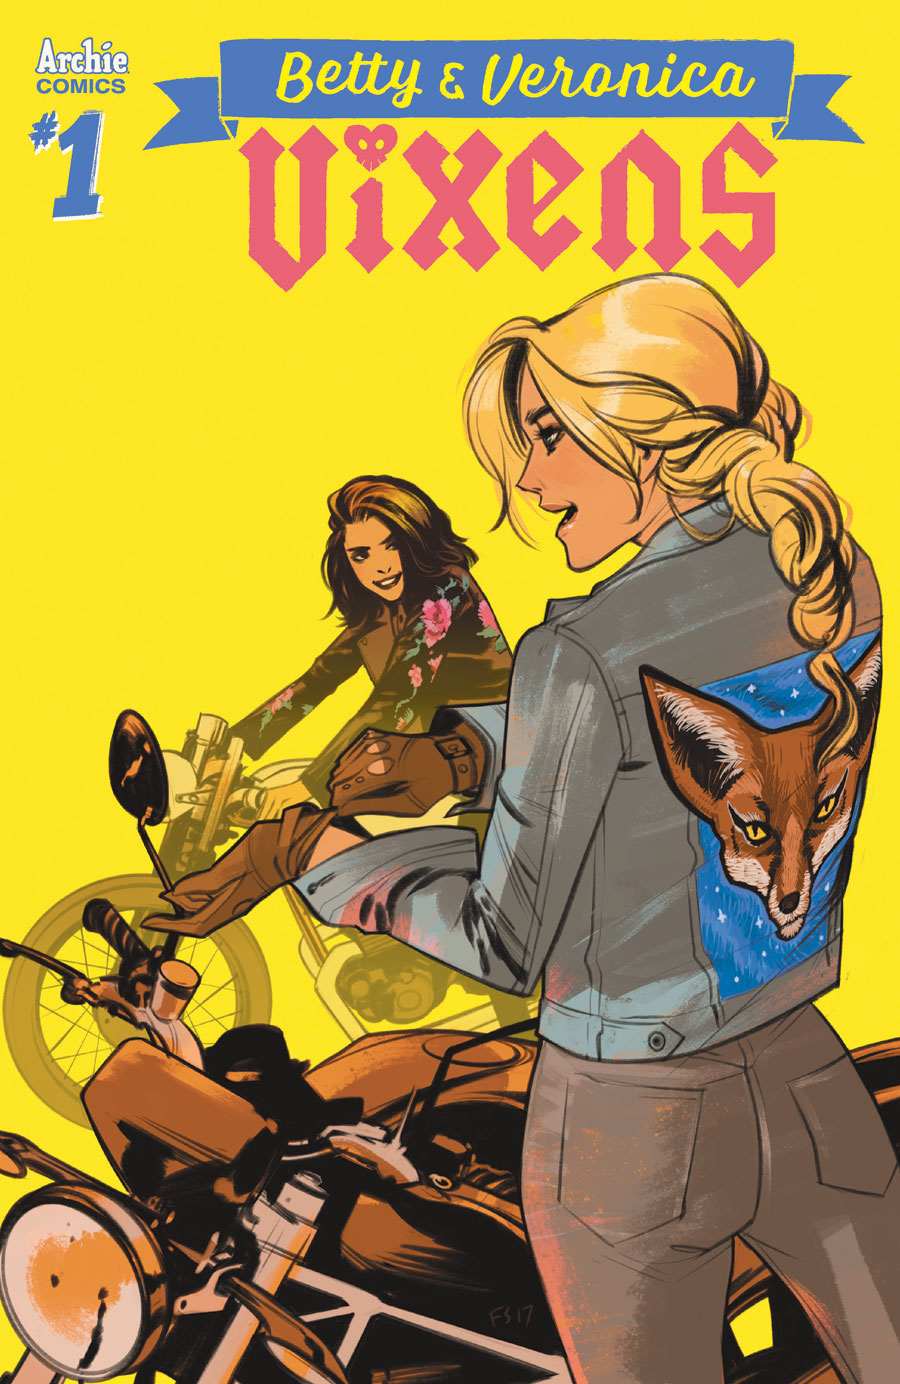 betty_veronica_vixens_1.png